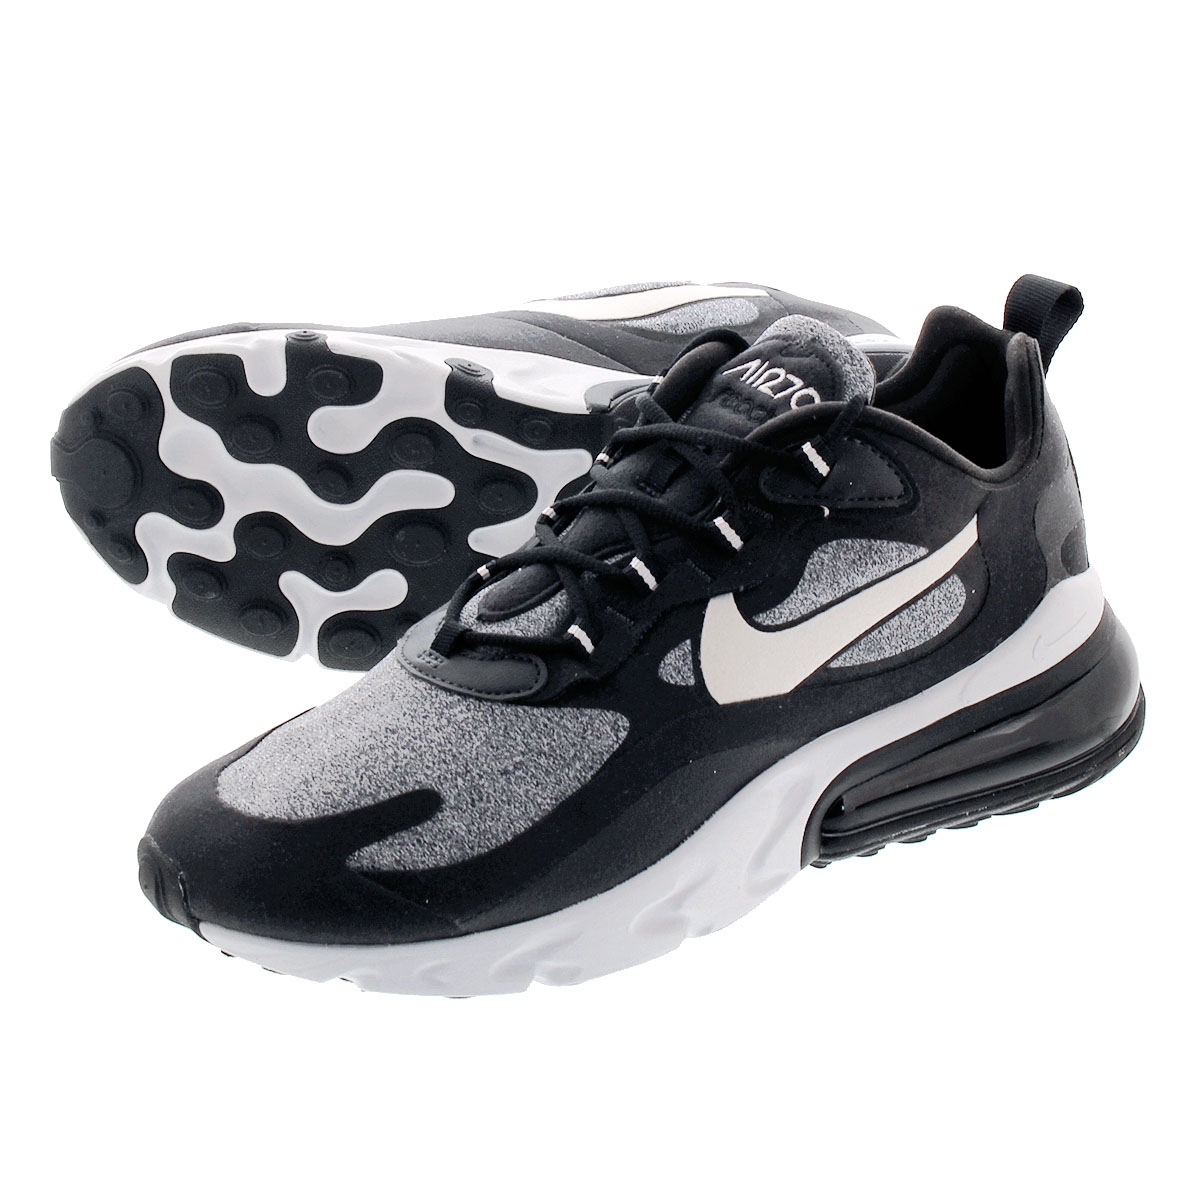 new concept b386c 1691a NIKE AIR MAX 270 REACT Kie Ney AMAX 270 re-act BLACK/VAST GREY/OFF NOIR  ao4971-001